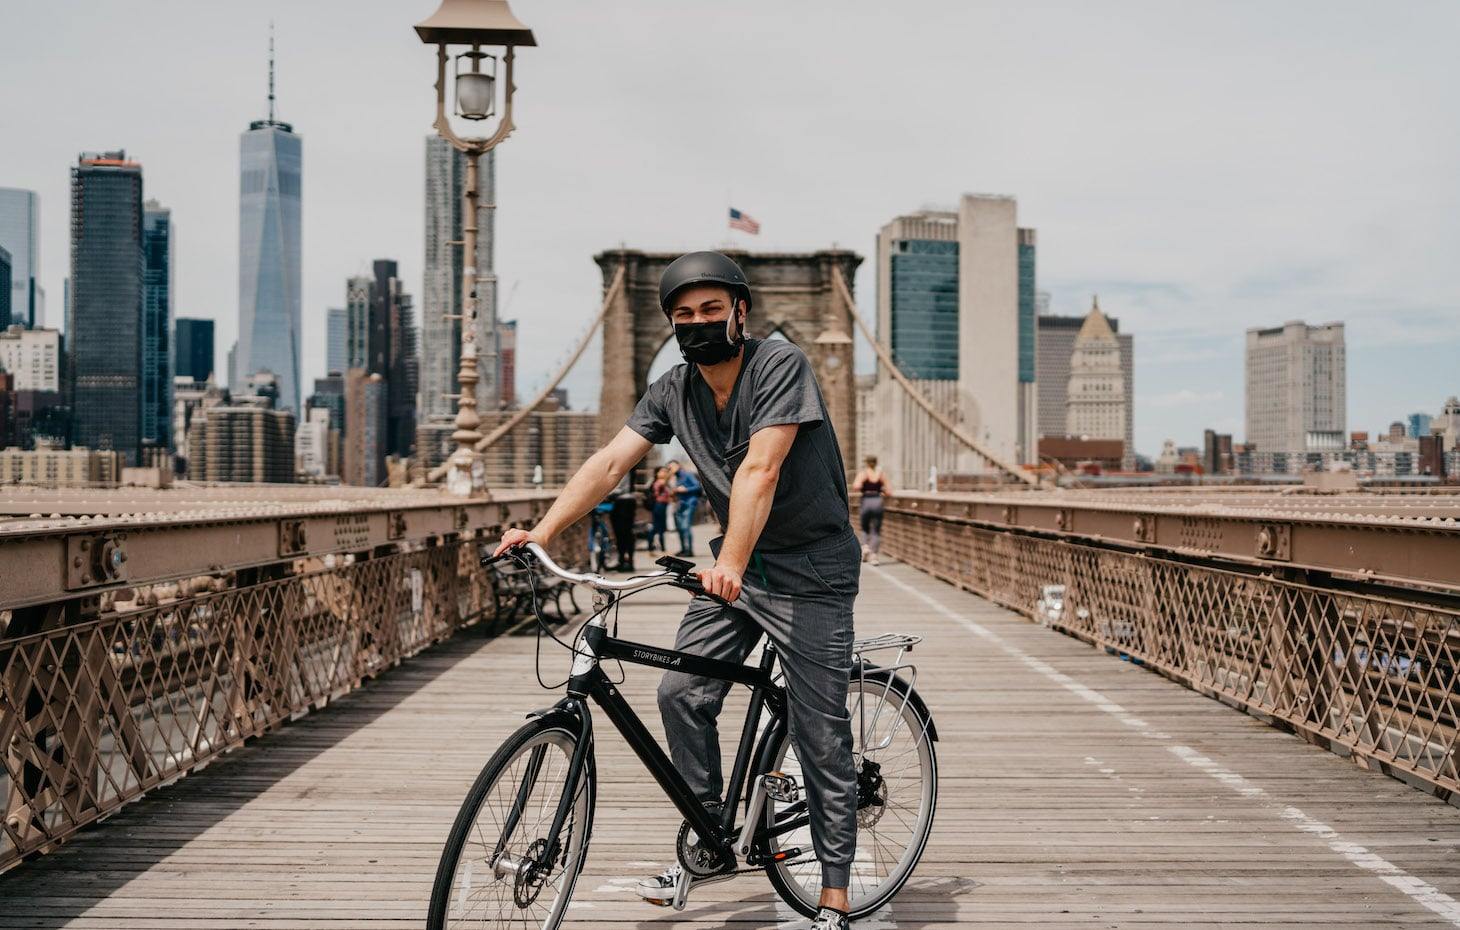 A CLOSER LOOK AT BICYCLE HELMET LAWS IN NEW YORK CITY